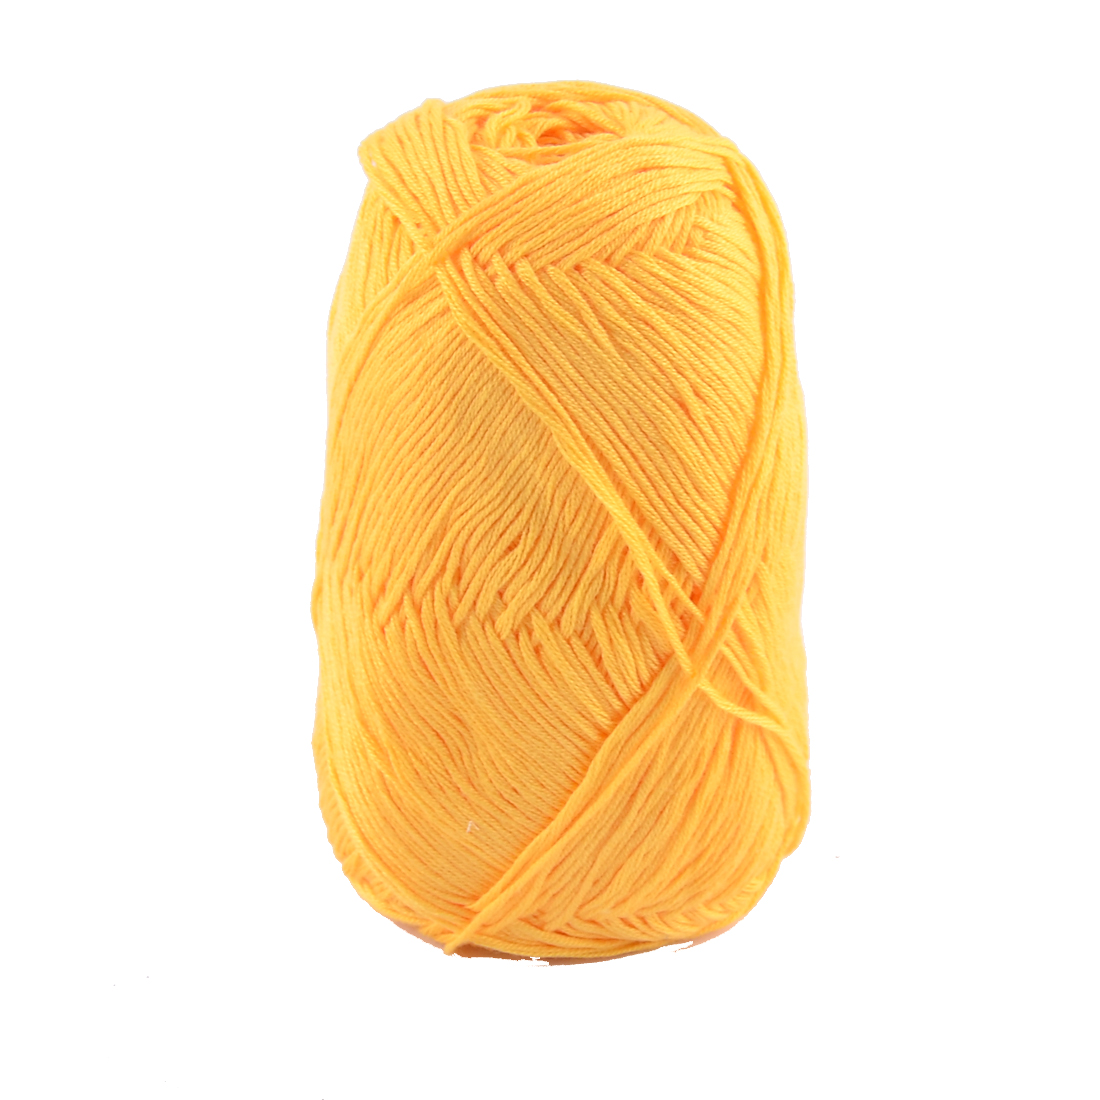 Cotton Hand DIY Knitting Clothes Hat Sweater Crochet Thread 50 Gram Yellow